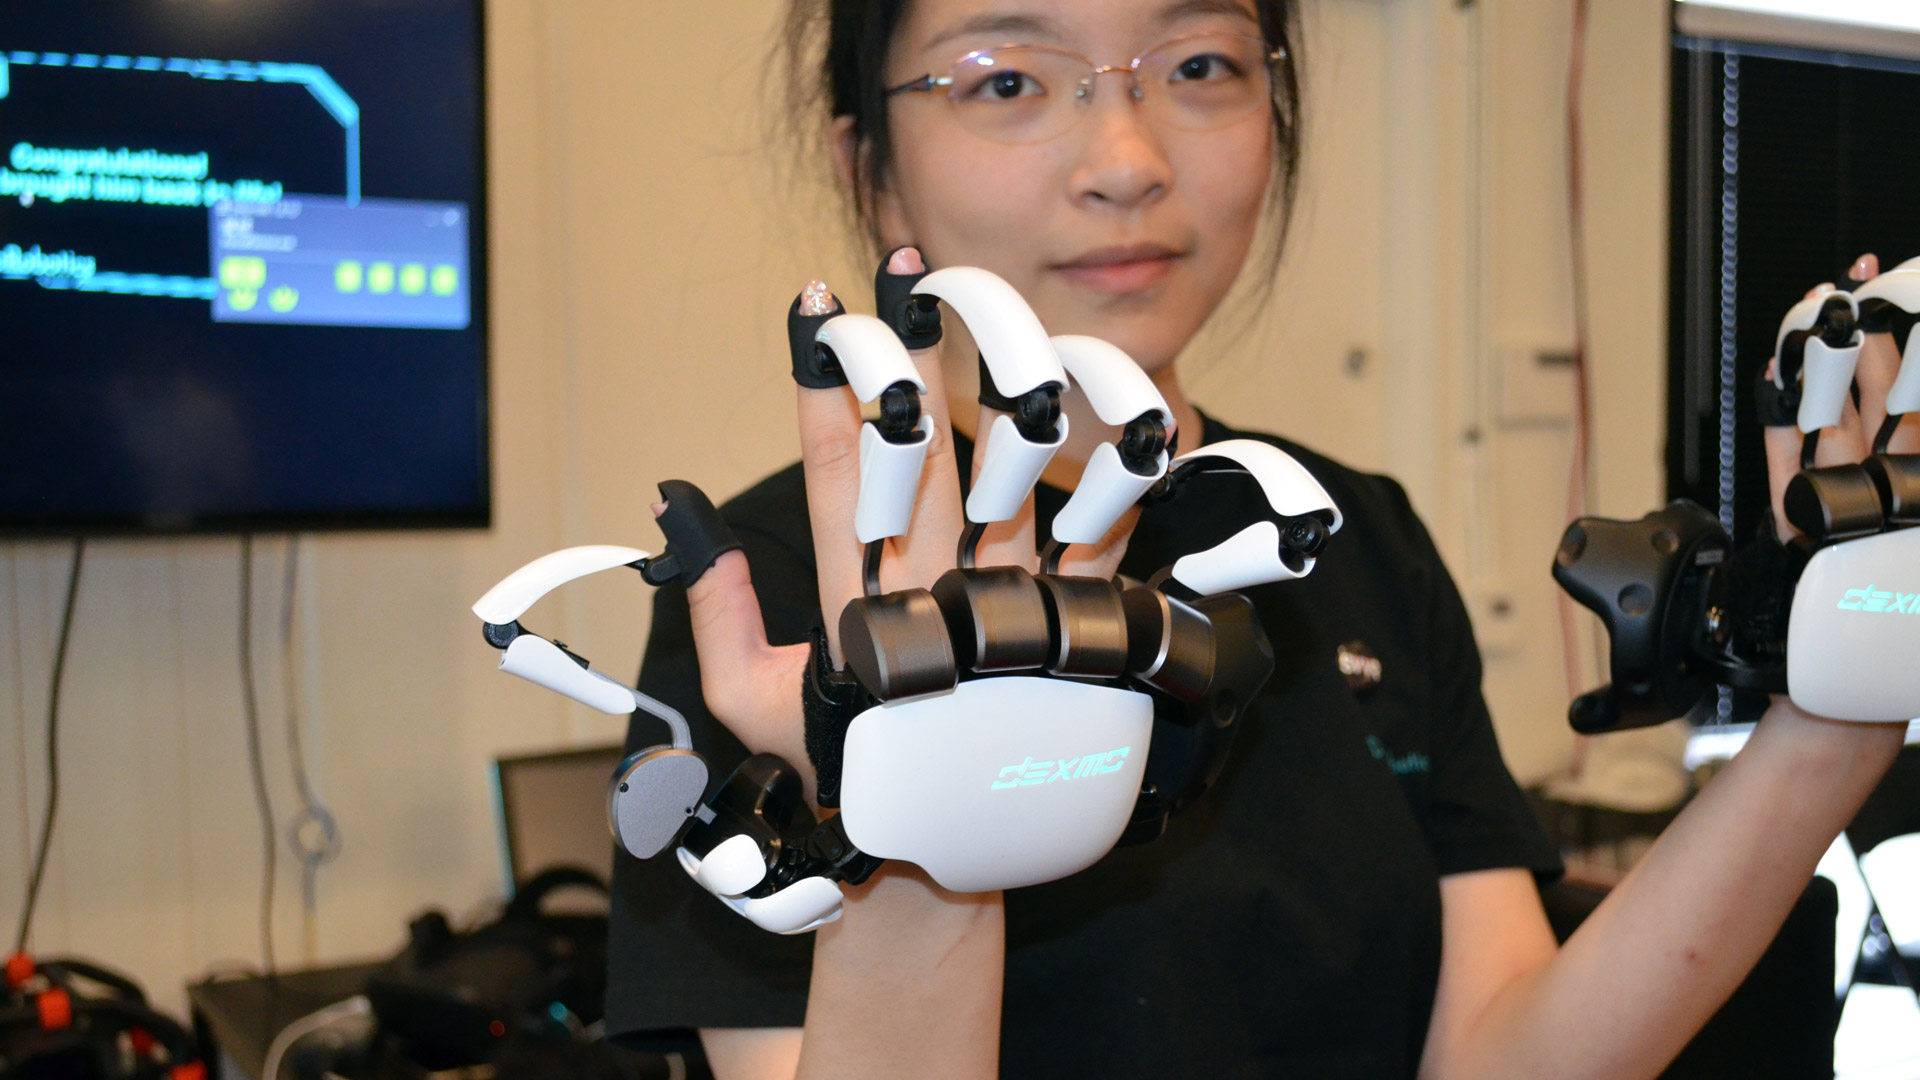 Dexmo Haptic Force-feedback VR Gloves are Compact and Wireless